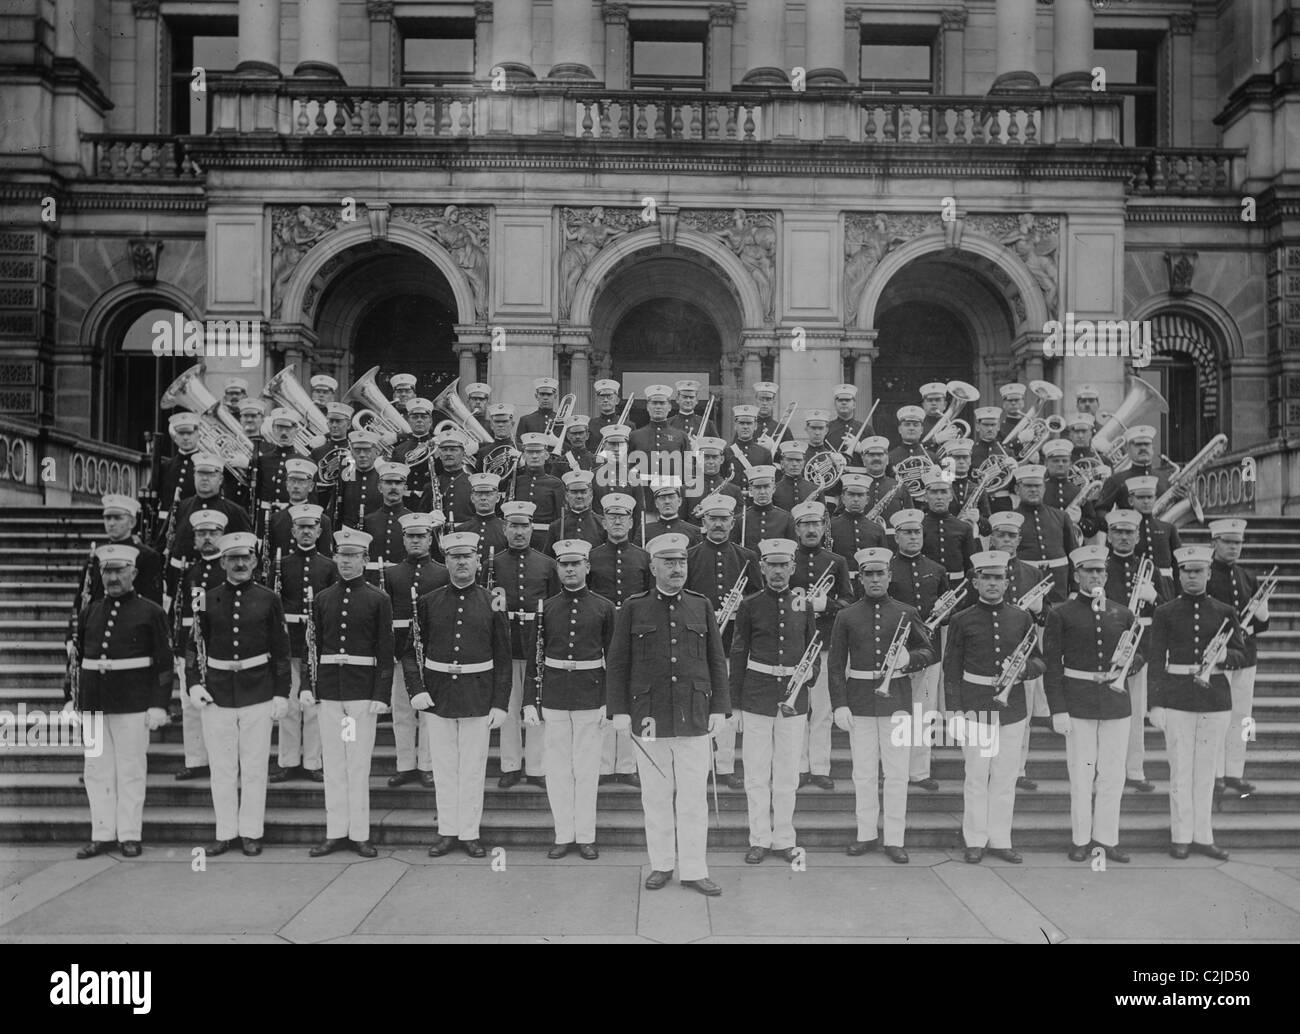 Marine Corps Band on Front of steps to the Executive Office Building - Stock Image